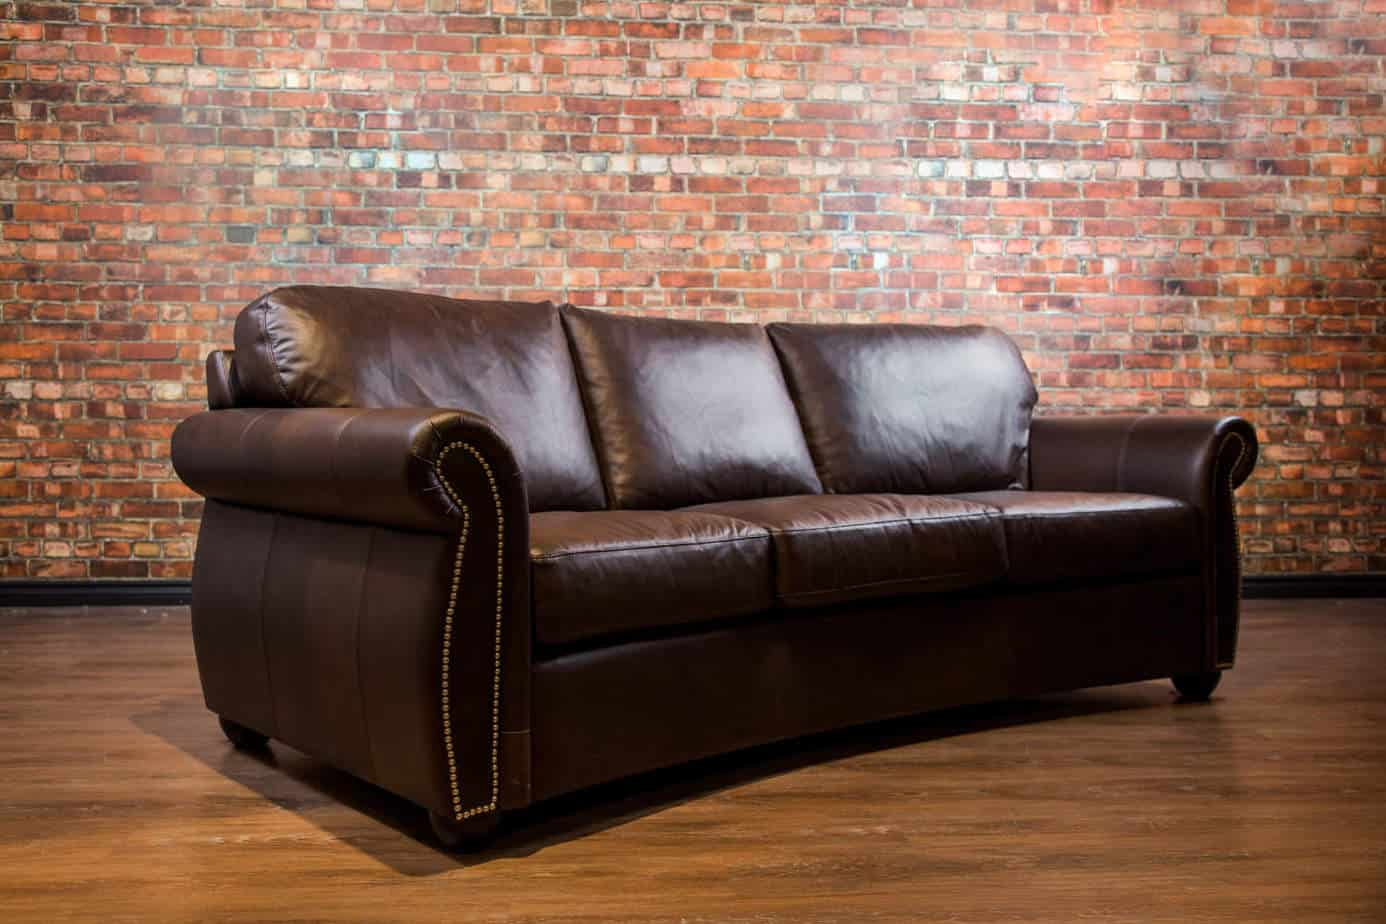 Denver Curved Sofa Canada S Boss Leather Sofas And Furniture